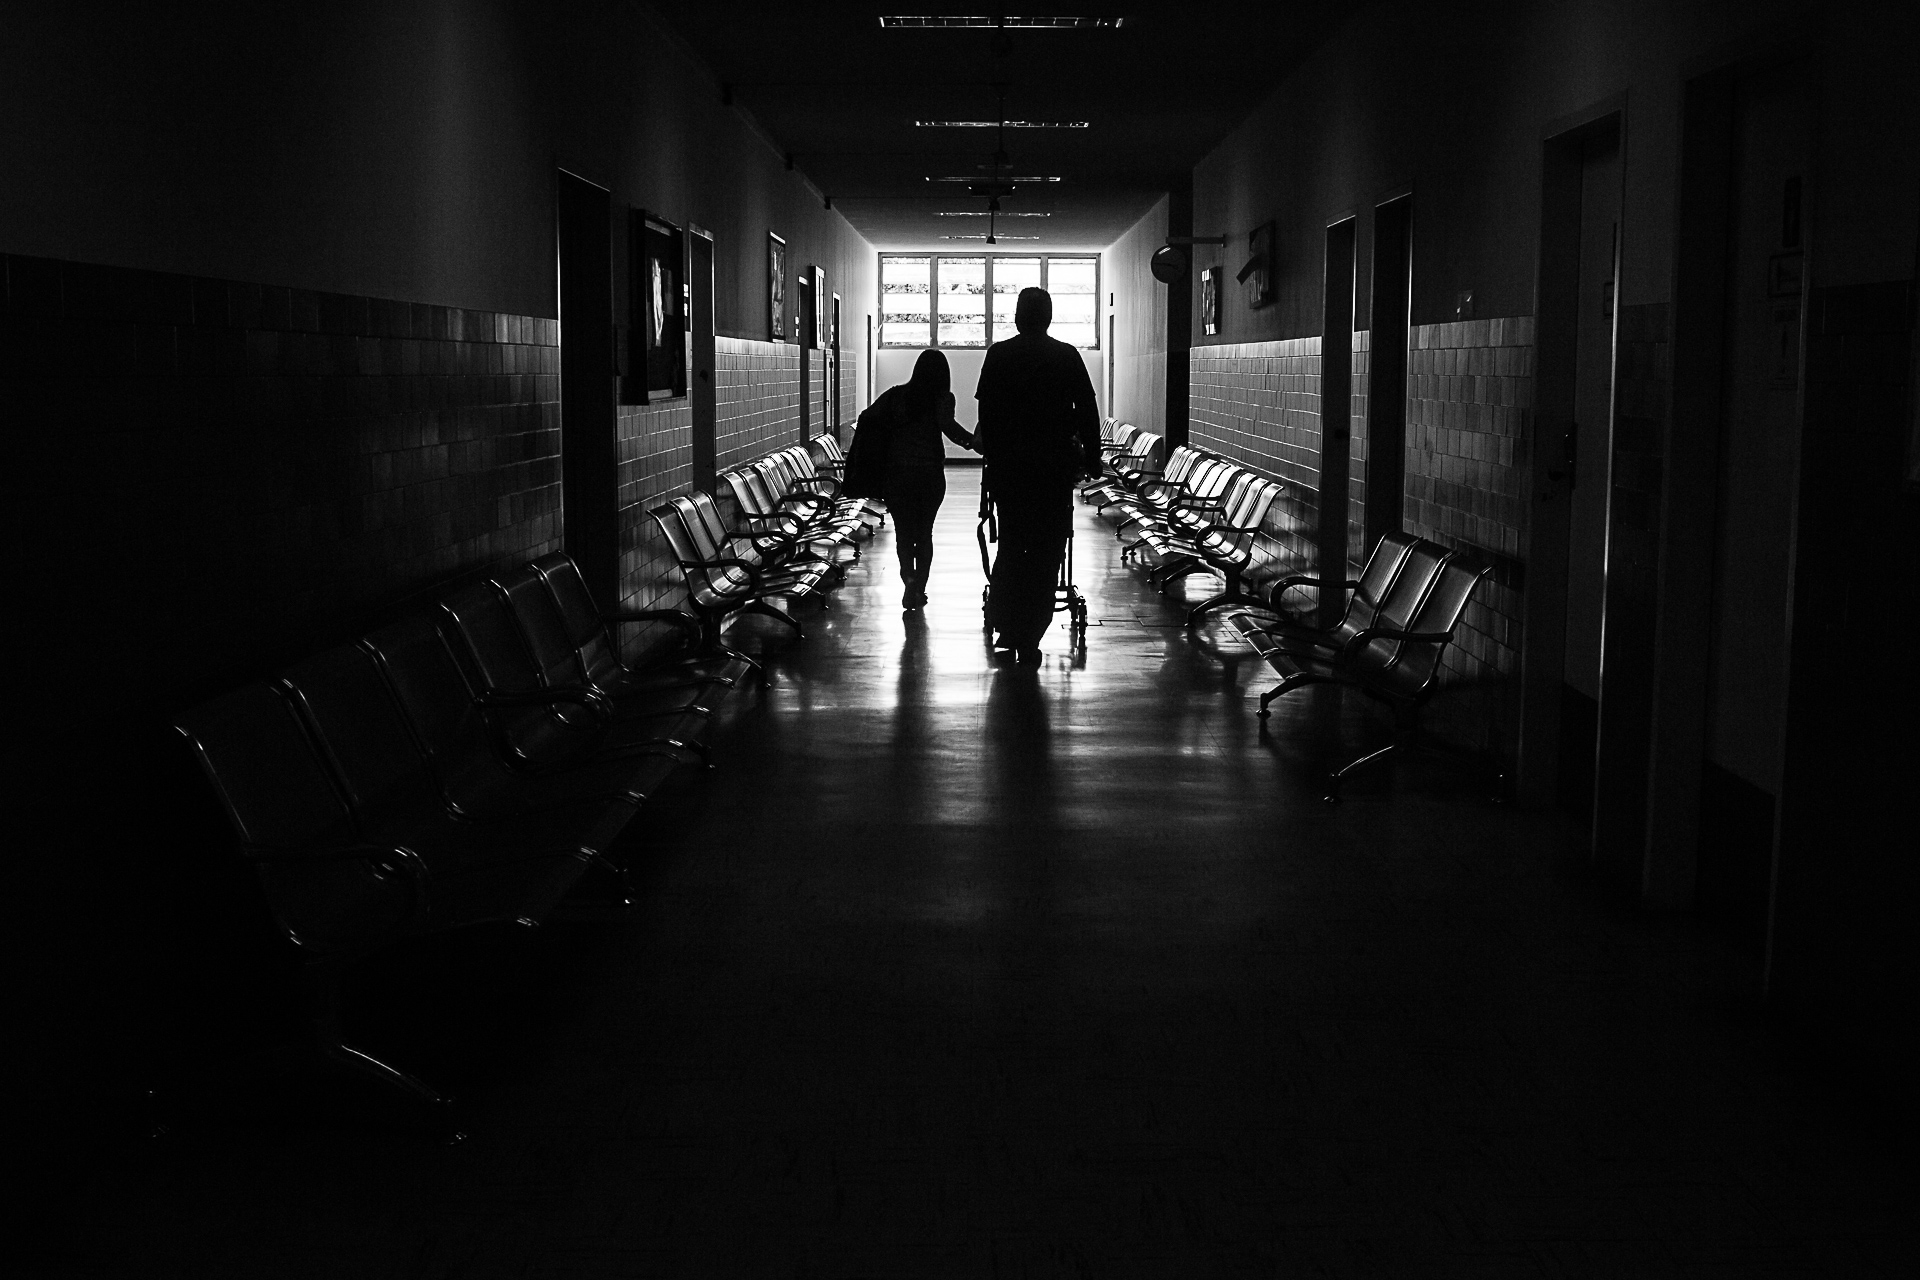 His mom and doctor walk with him on a stretcher through the hospital's hall.